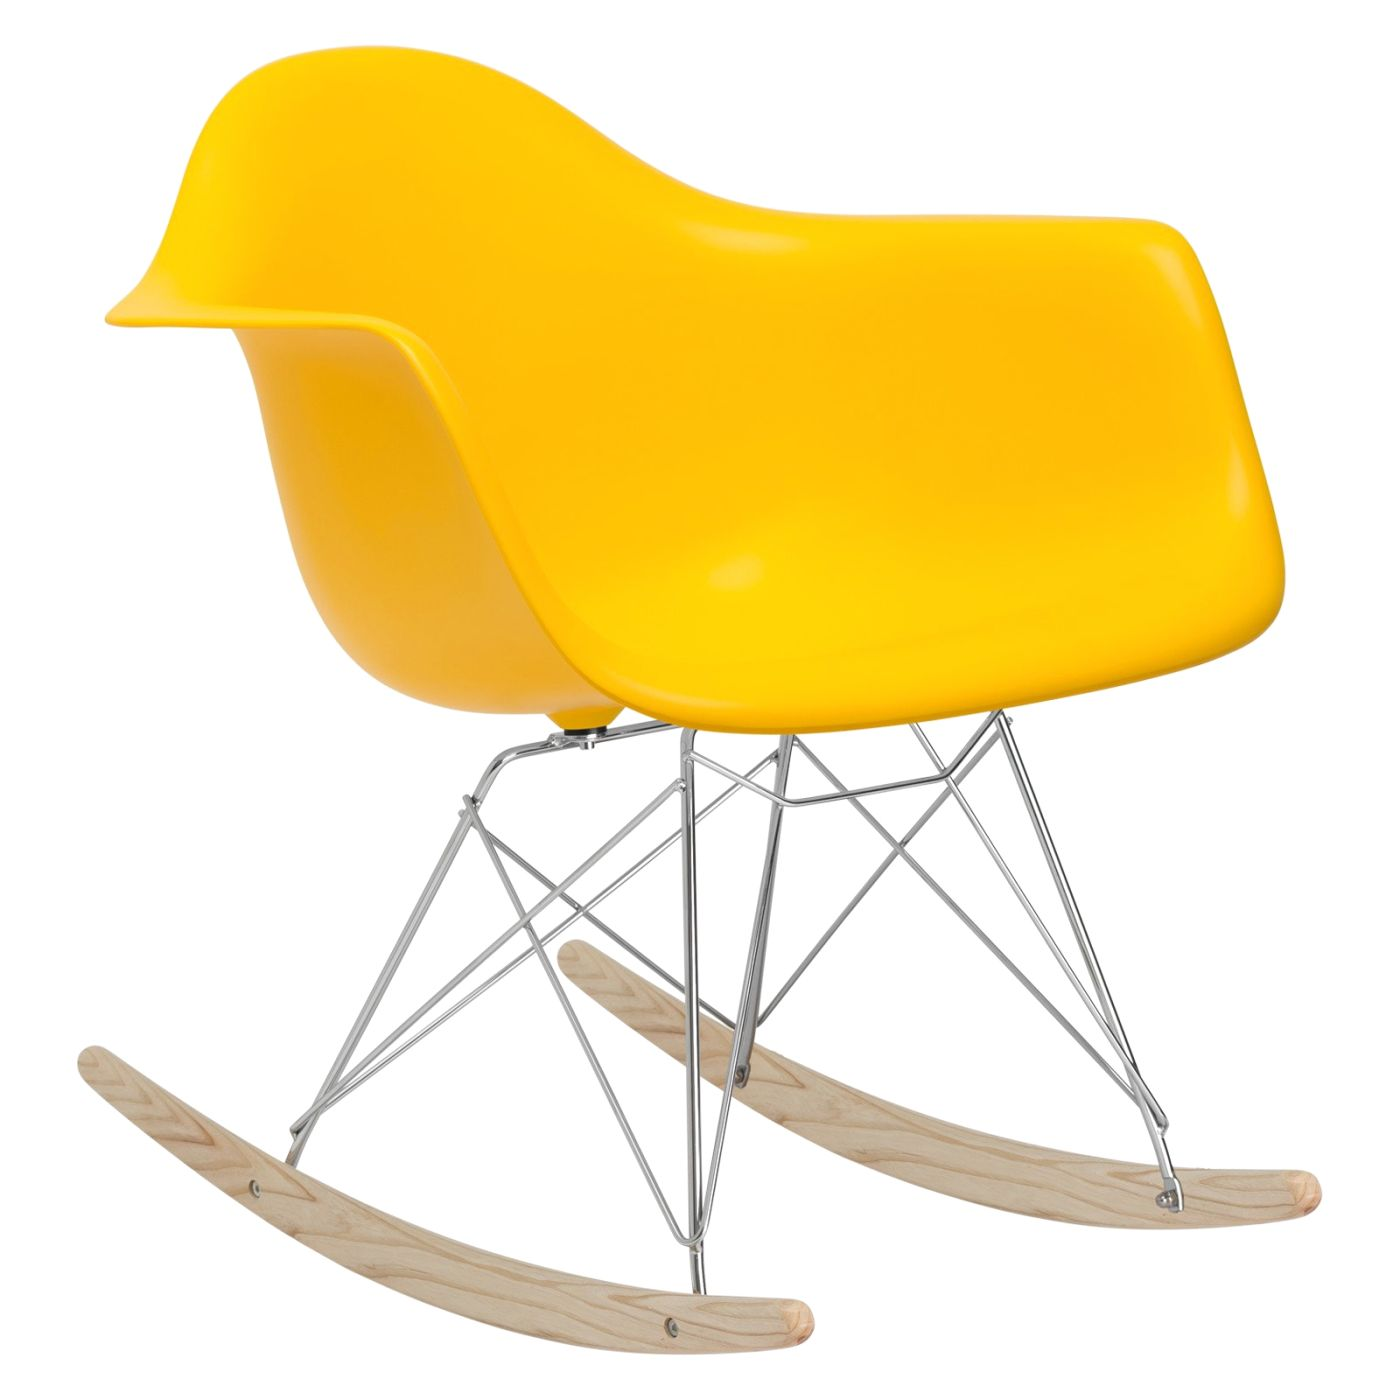 EdgeMod Rocker Lounge Chair in Yellow at Contemporary Furniture